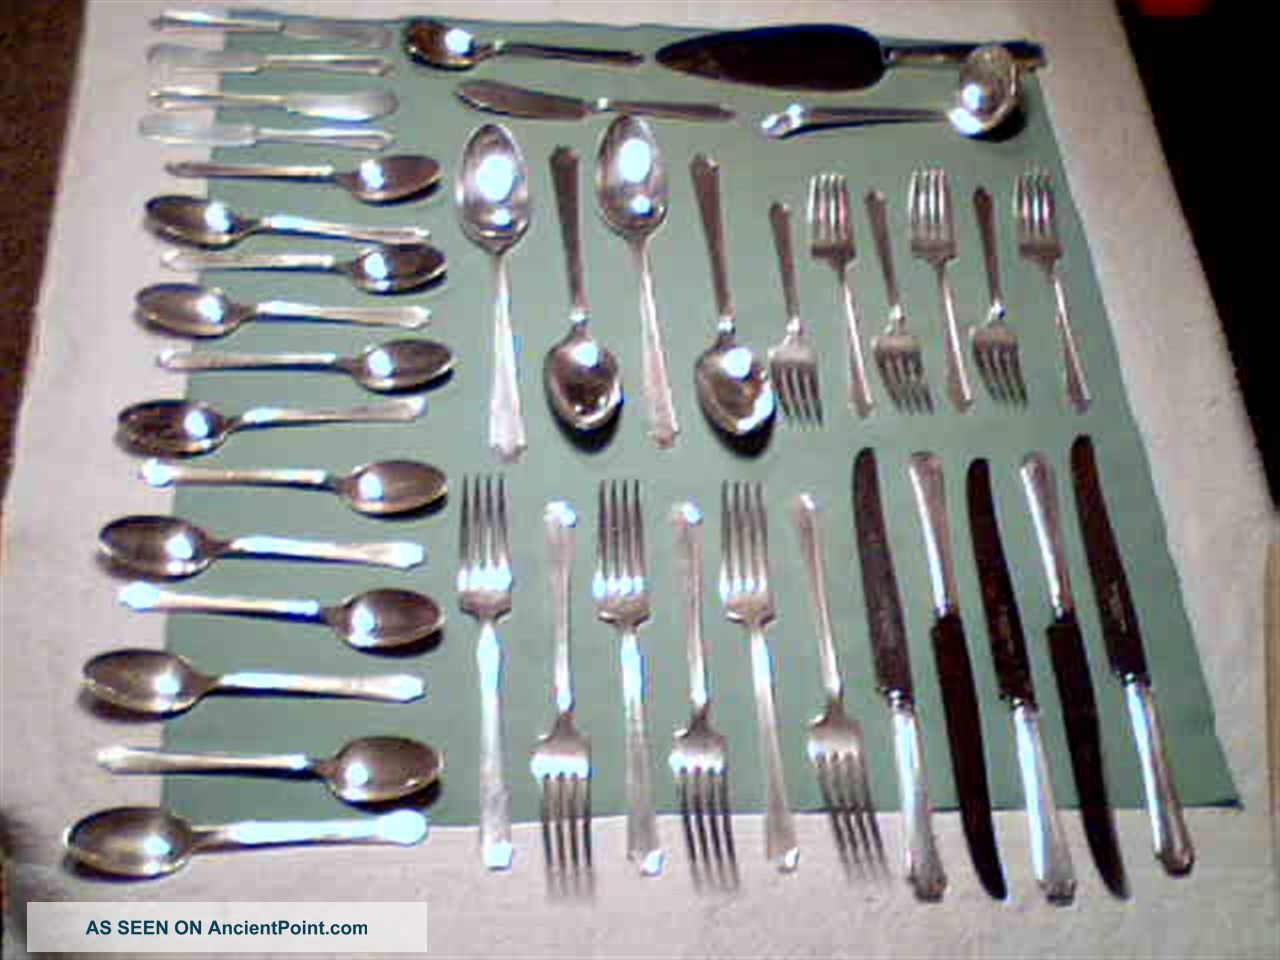 1847 Rogers Bros.  Silverplate 41 Pieces Includes Serving Pieces - Legacy - 1928 International/1847 Rogers photo